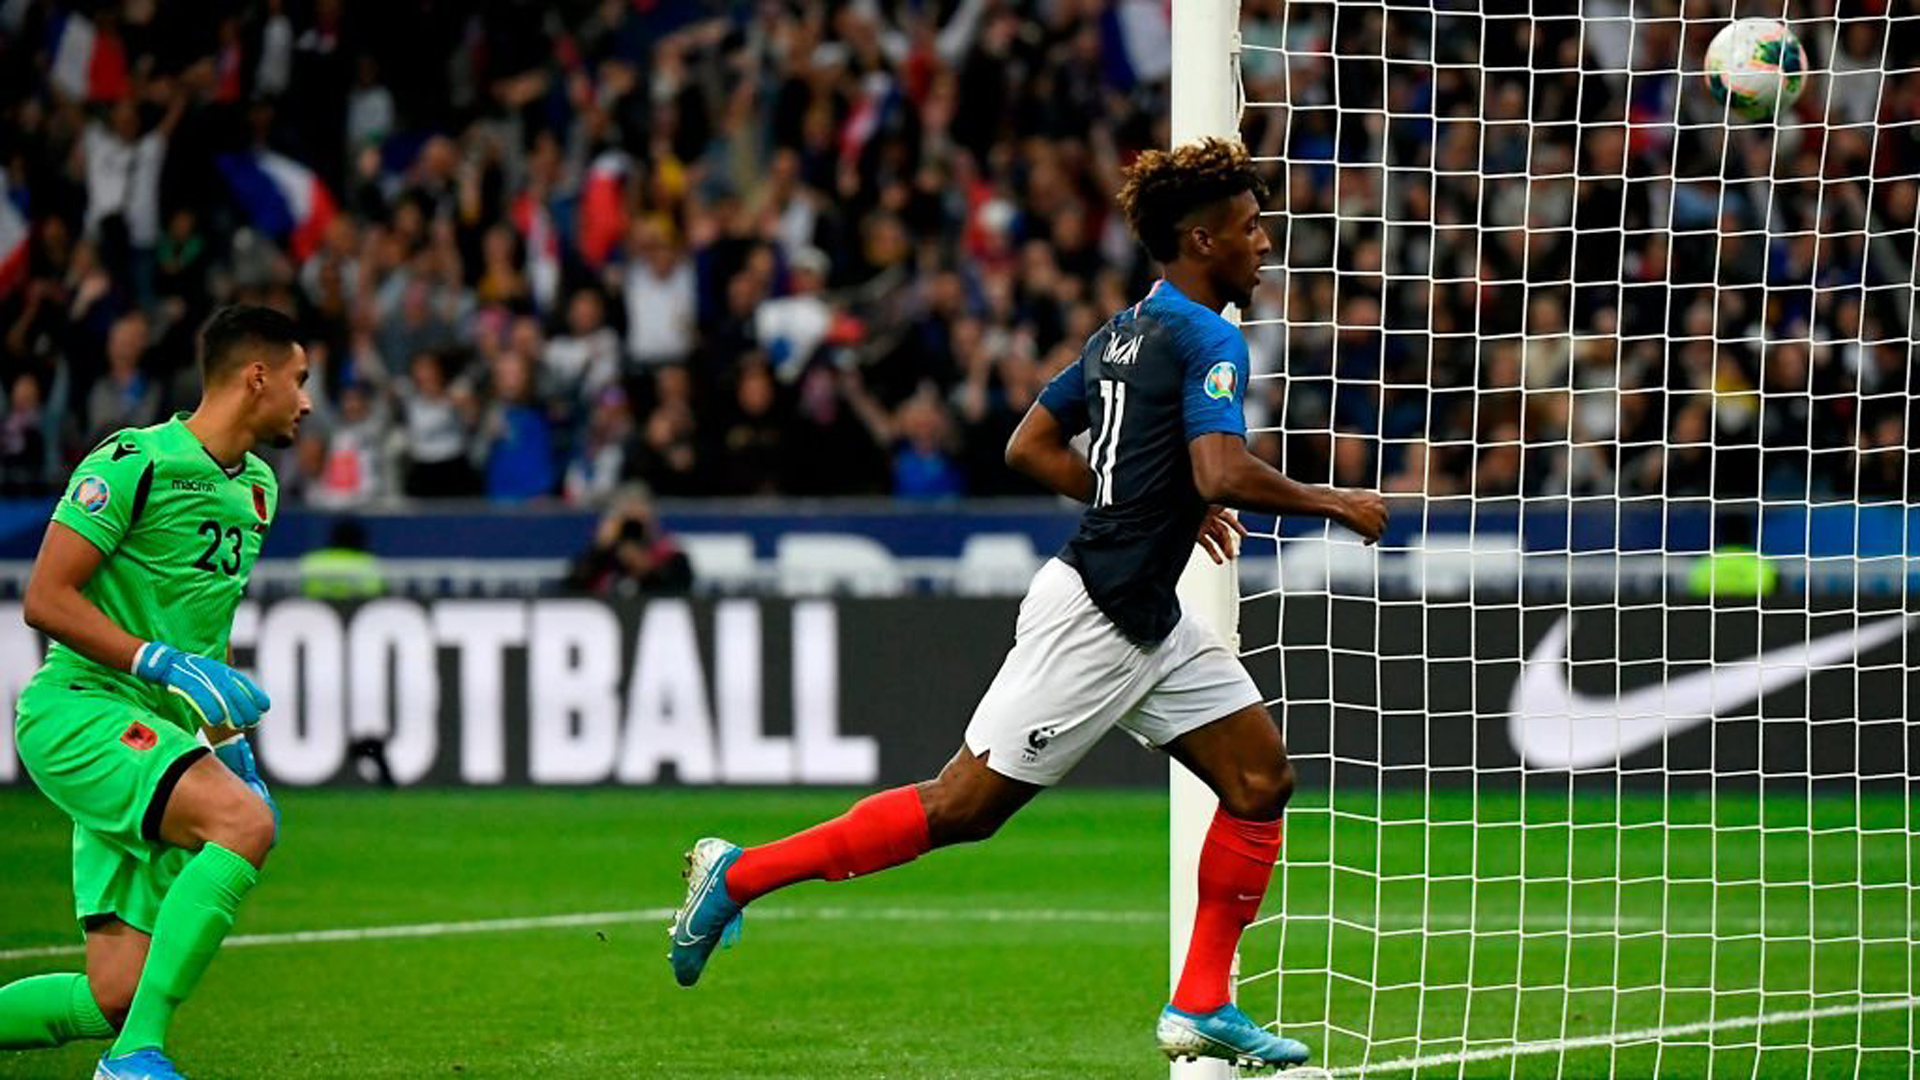 'It's nice to see him on such a level' – Deschamps praises Coman after France brace